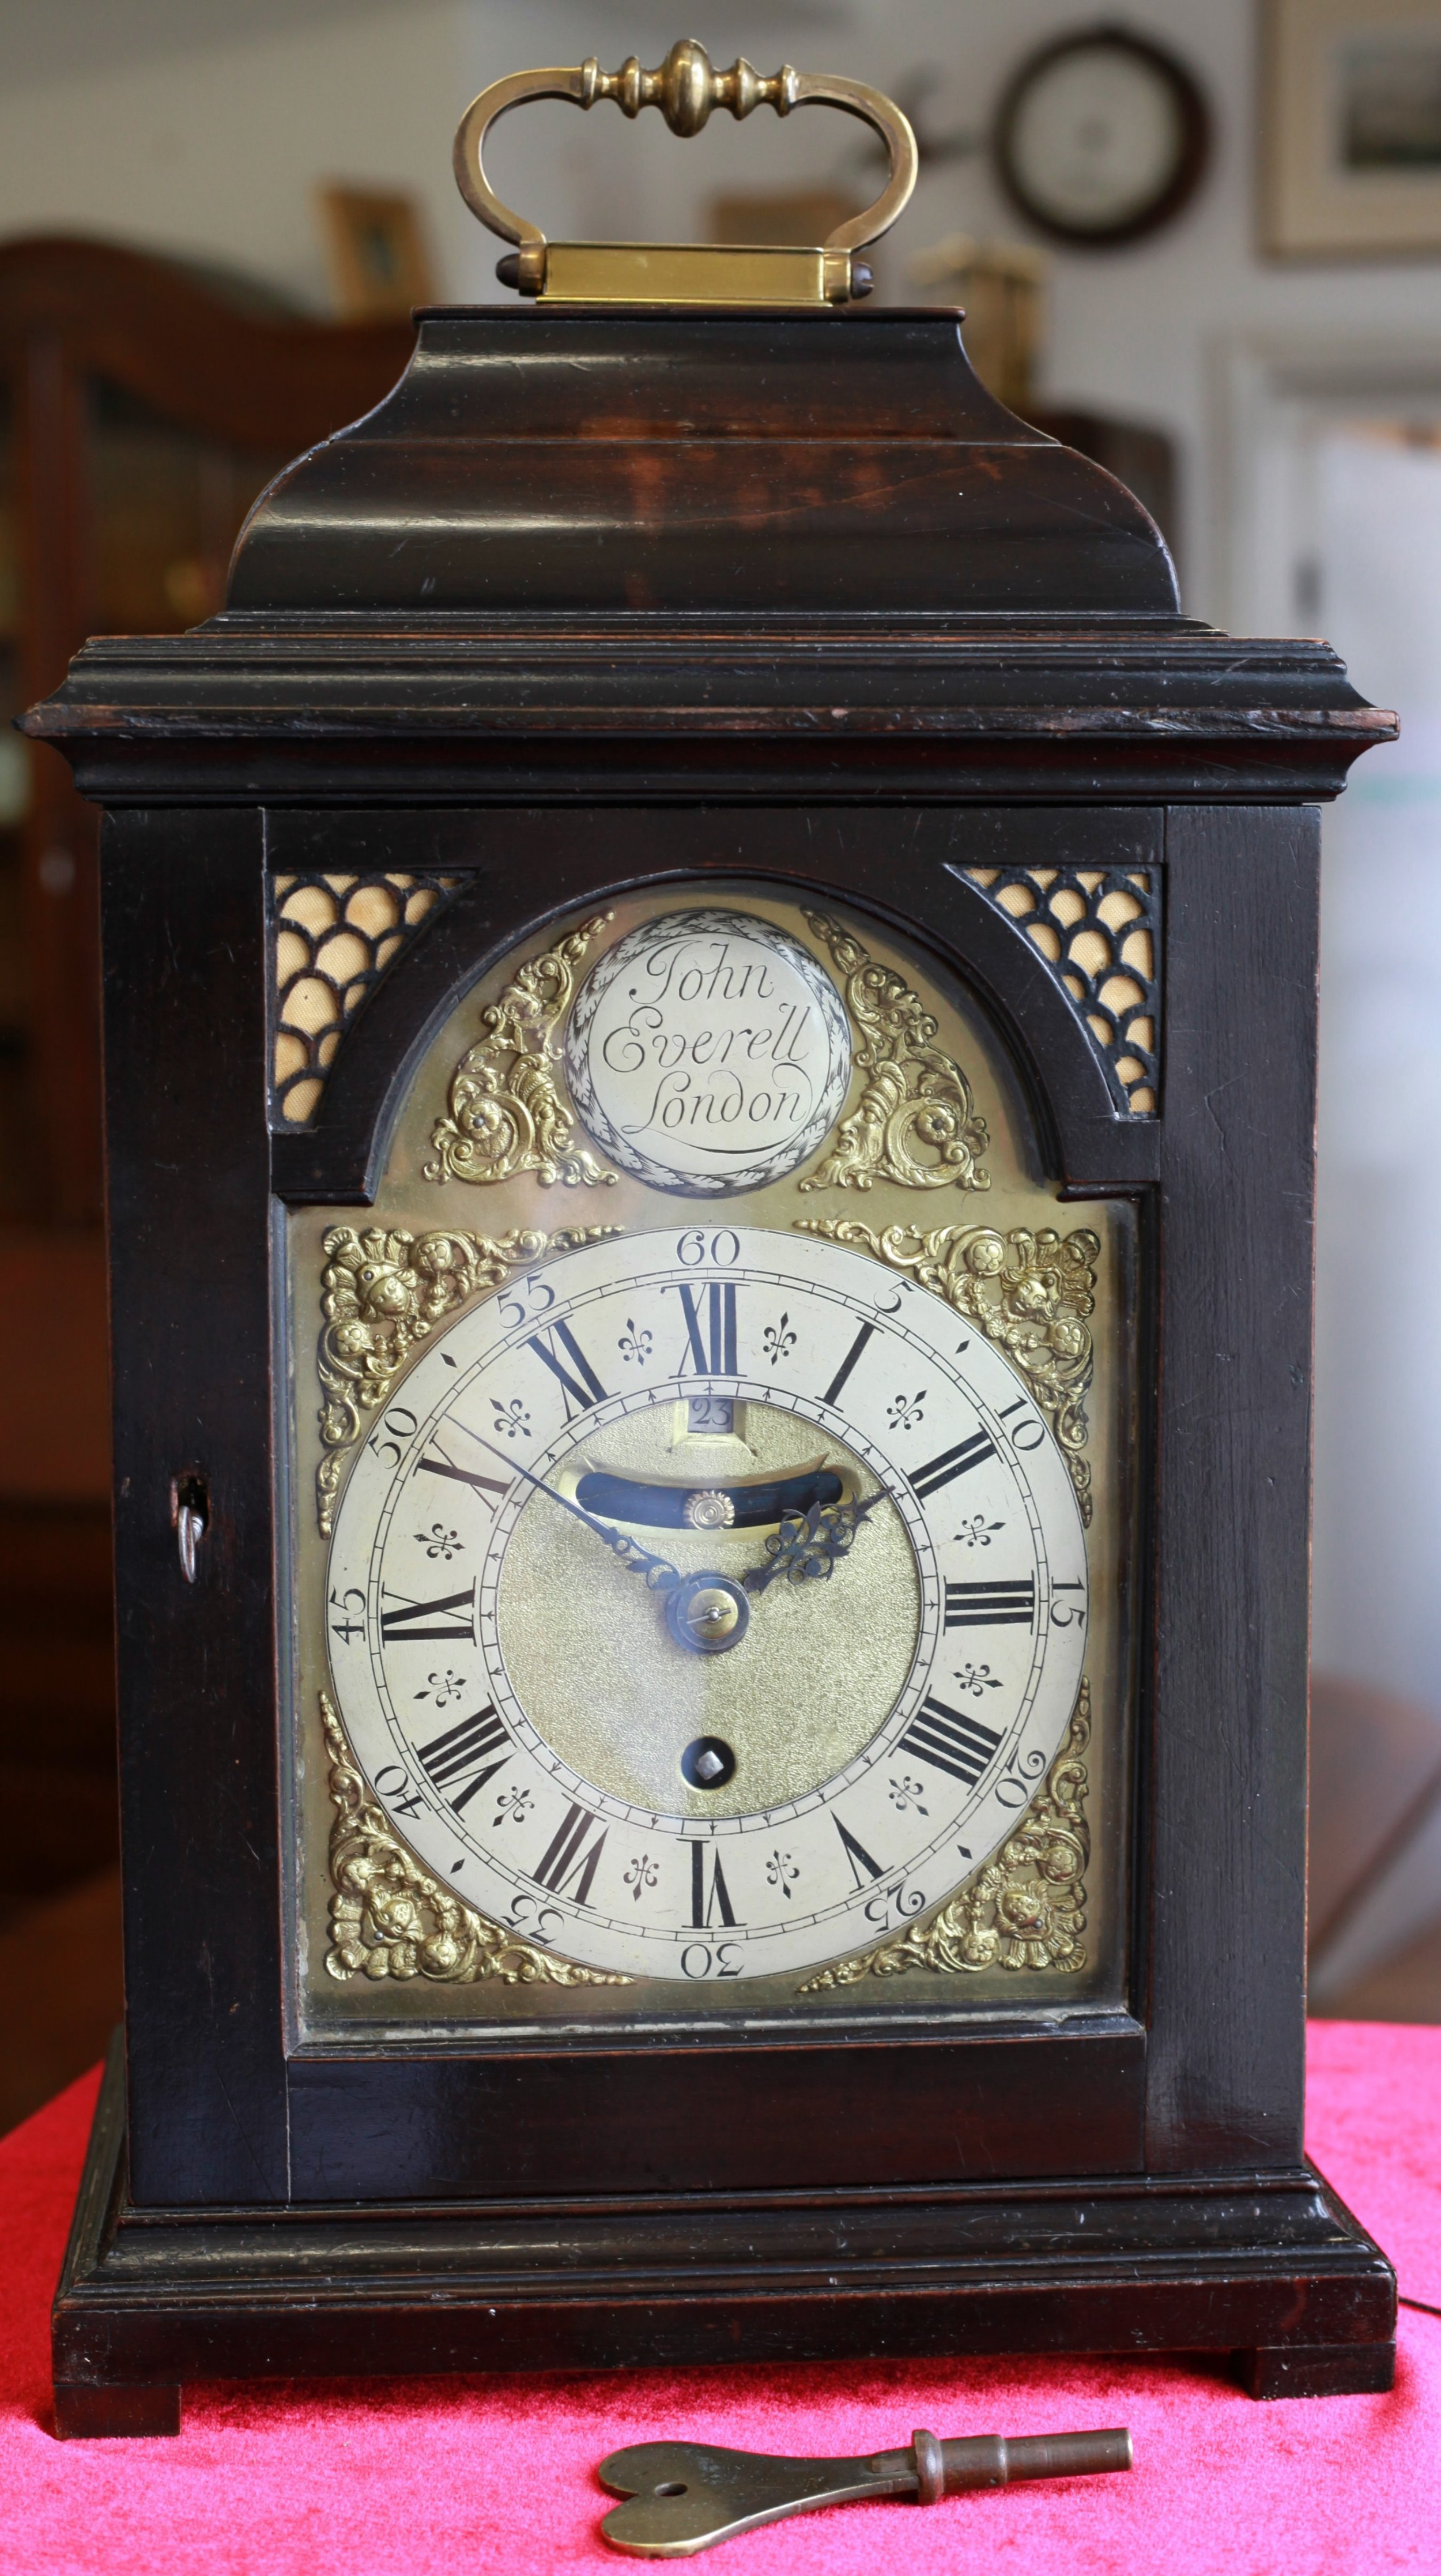 c1745 small ebonised bracket clock with pull quarter repeat by john everell